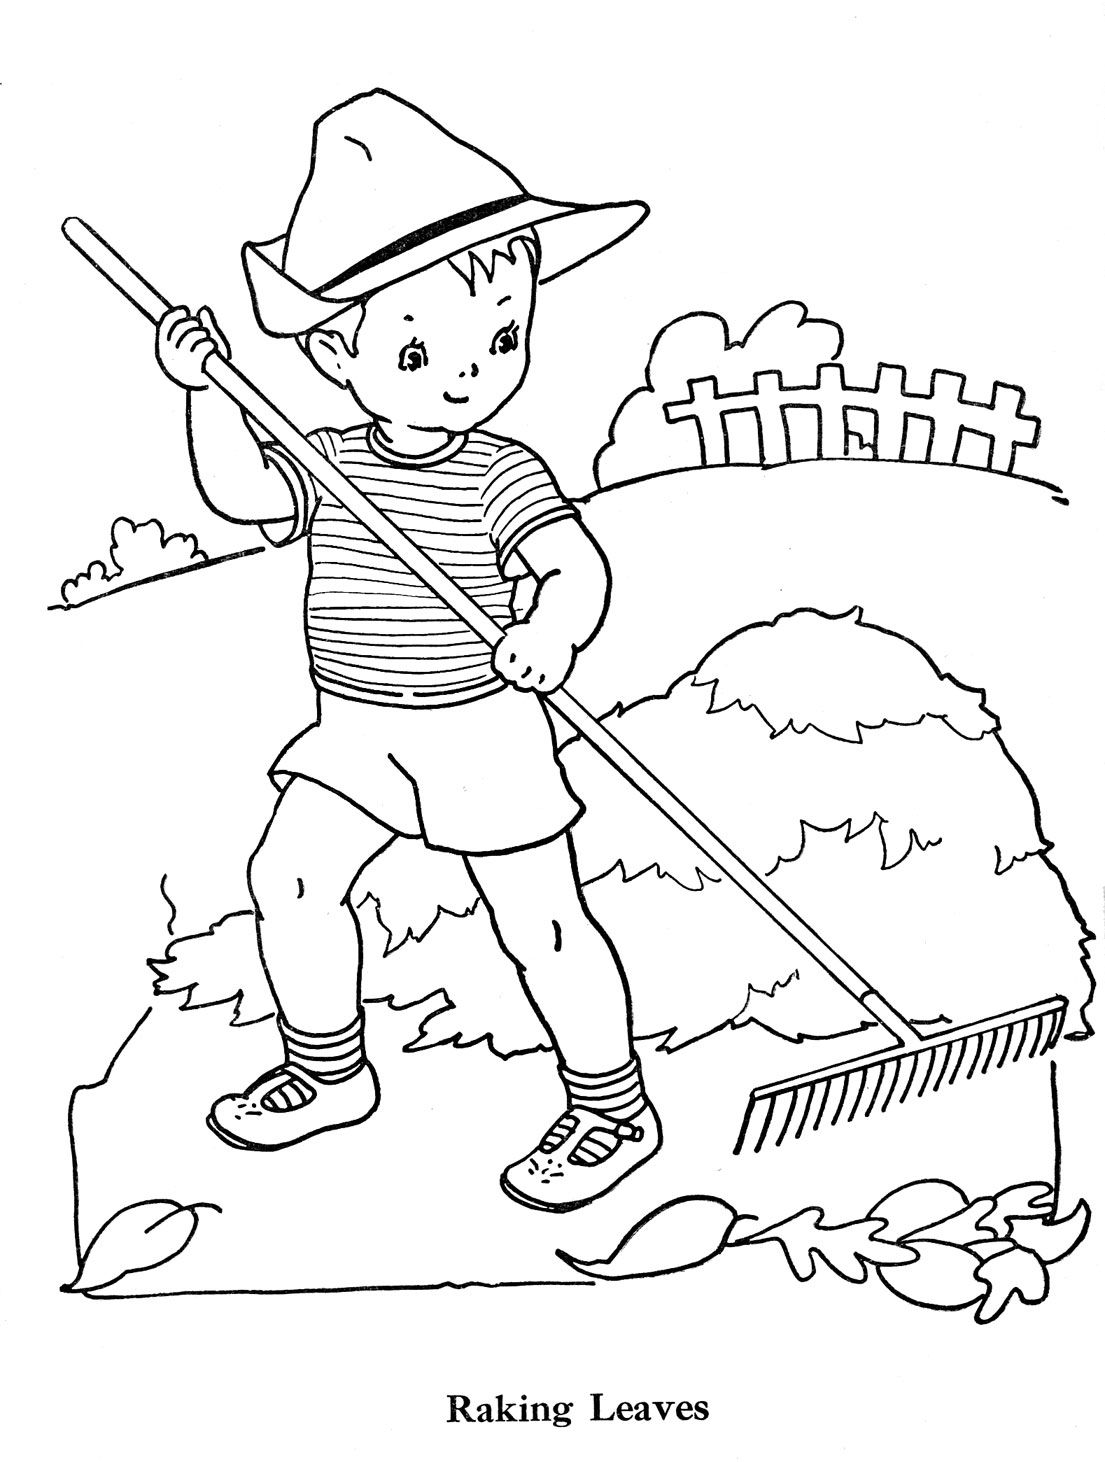 coloring pictures for boys great site craft ideas pinterest